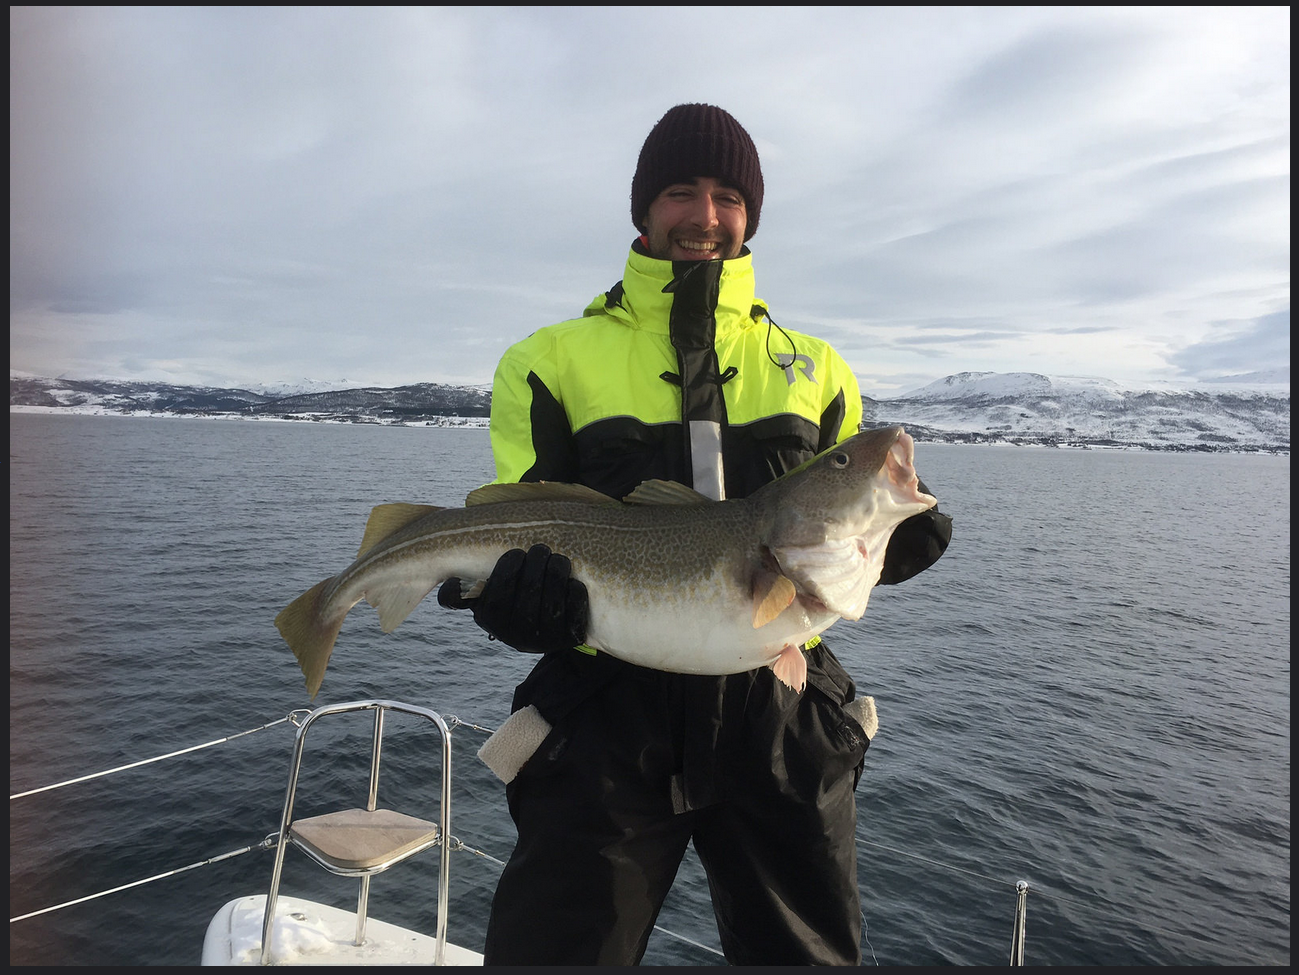 #Fishing | #Tromso | #ArcticPrincess